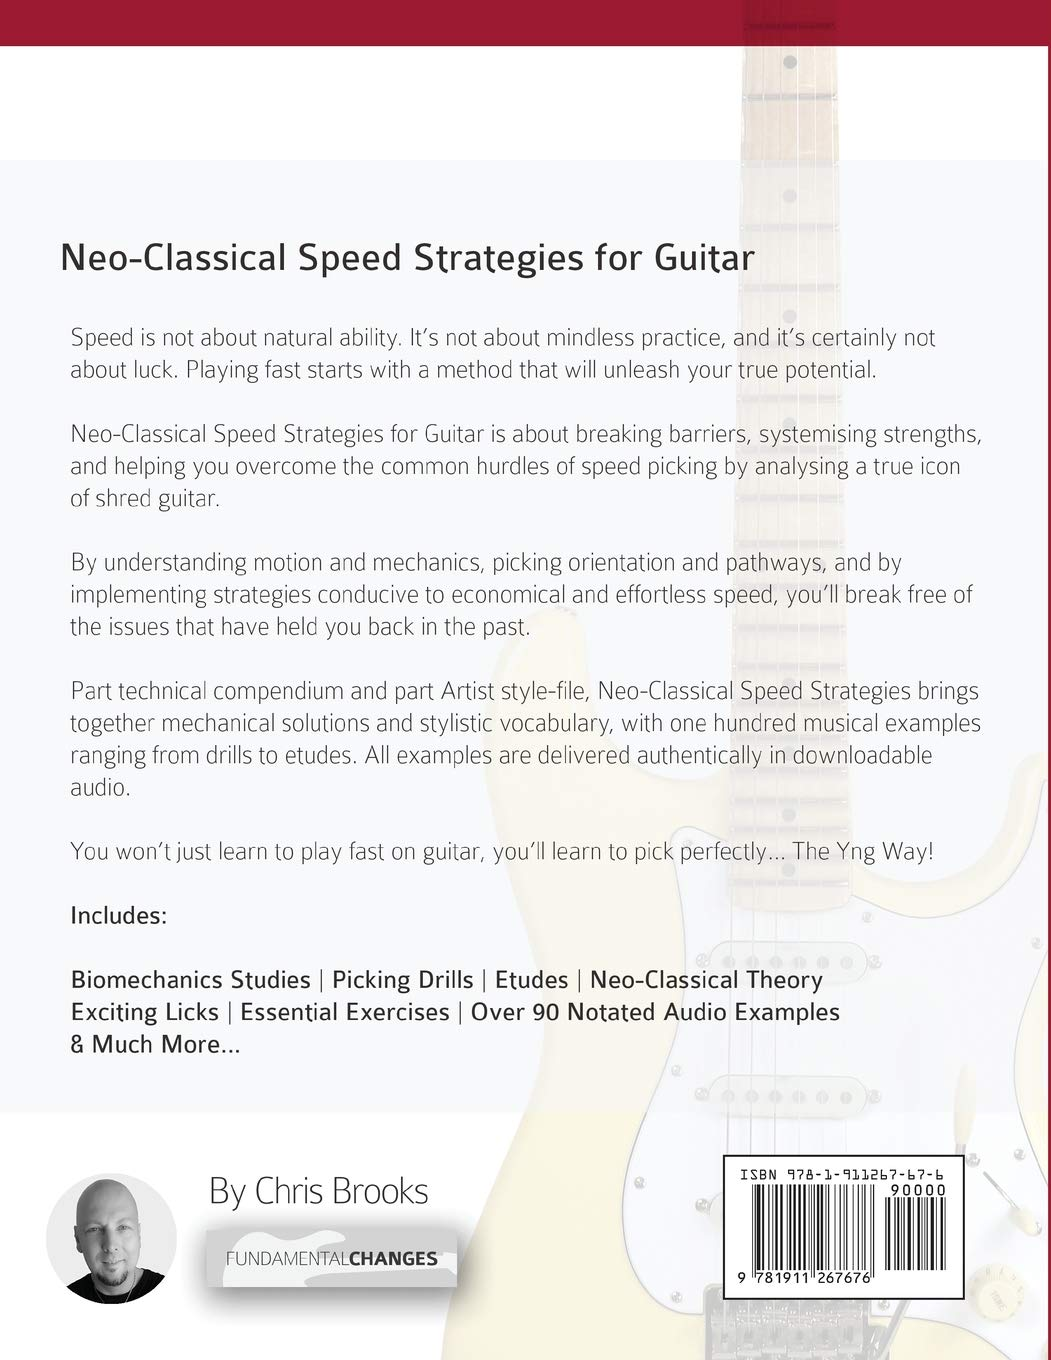 Neoclassical Speed Strategies for Guitar: Master Speed Picking for Shred Guitar & Play Fast - The Yng Way!: Amazon.es: Chris Brooks, Joseph Alexander: ...